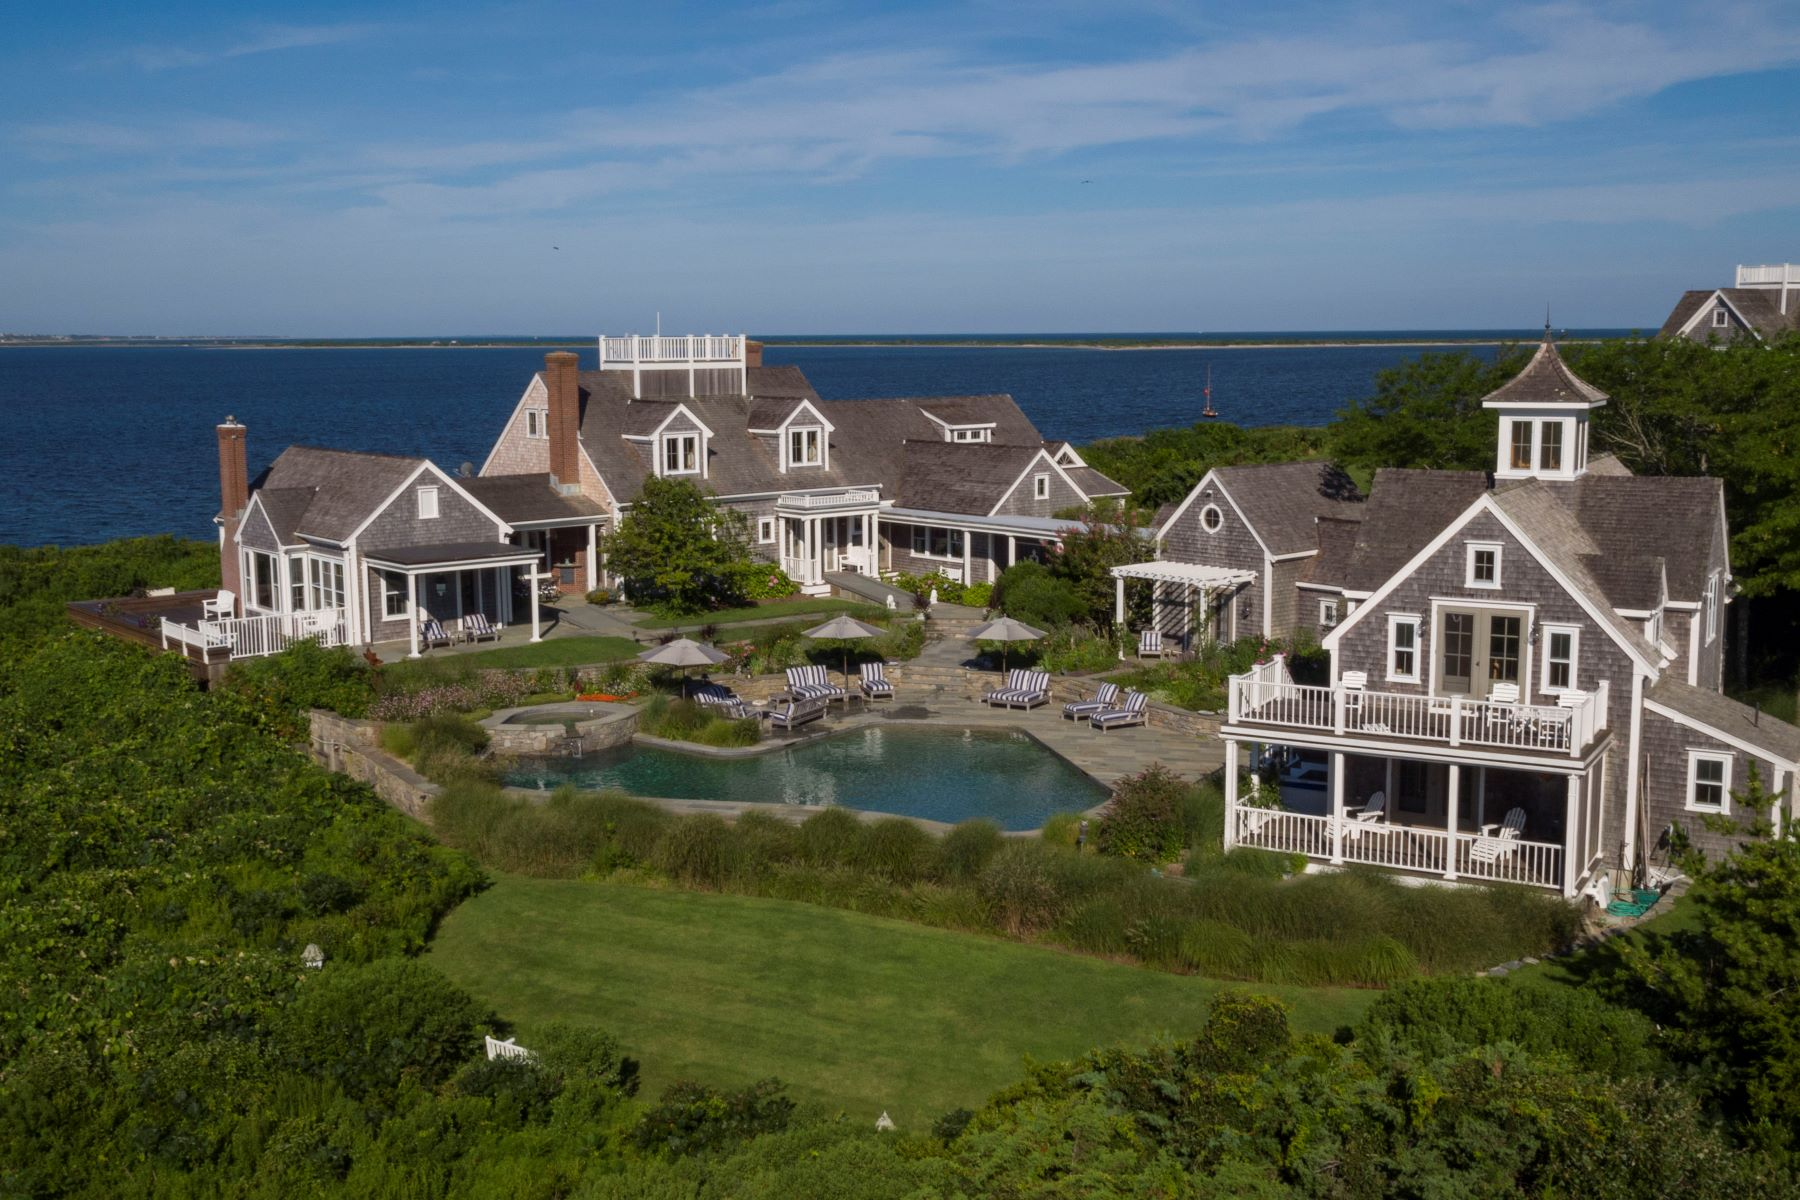 Single Family Home for Sale at Entirely Unique Waterfront Estate 72 Pocomo Road 78 Pocomo Road Nantucket, Massachusetts, 02554 United States